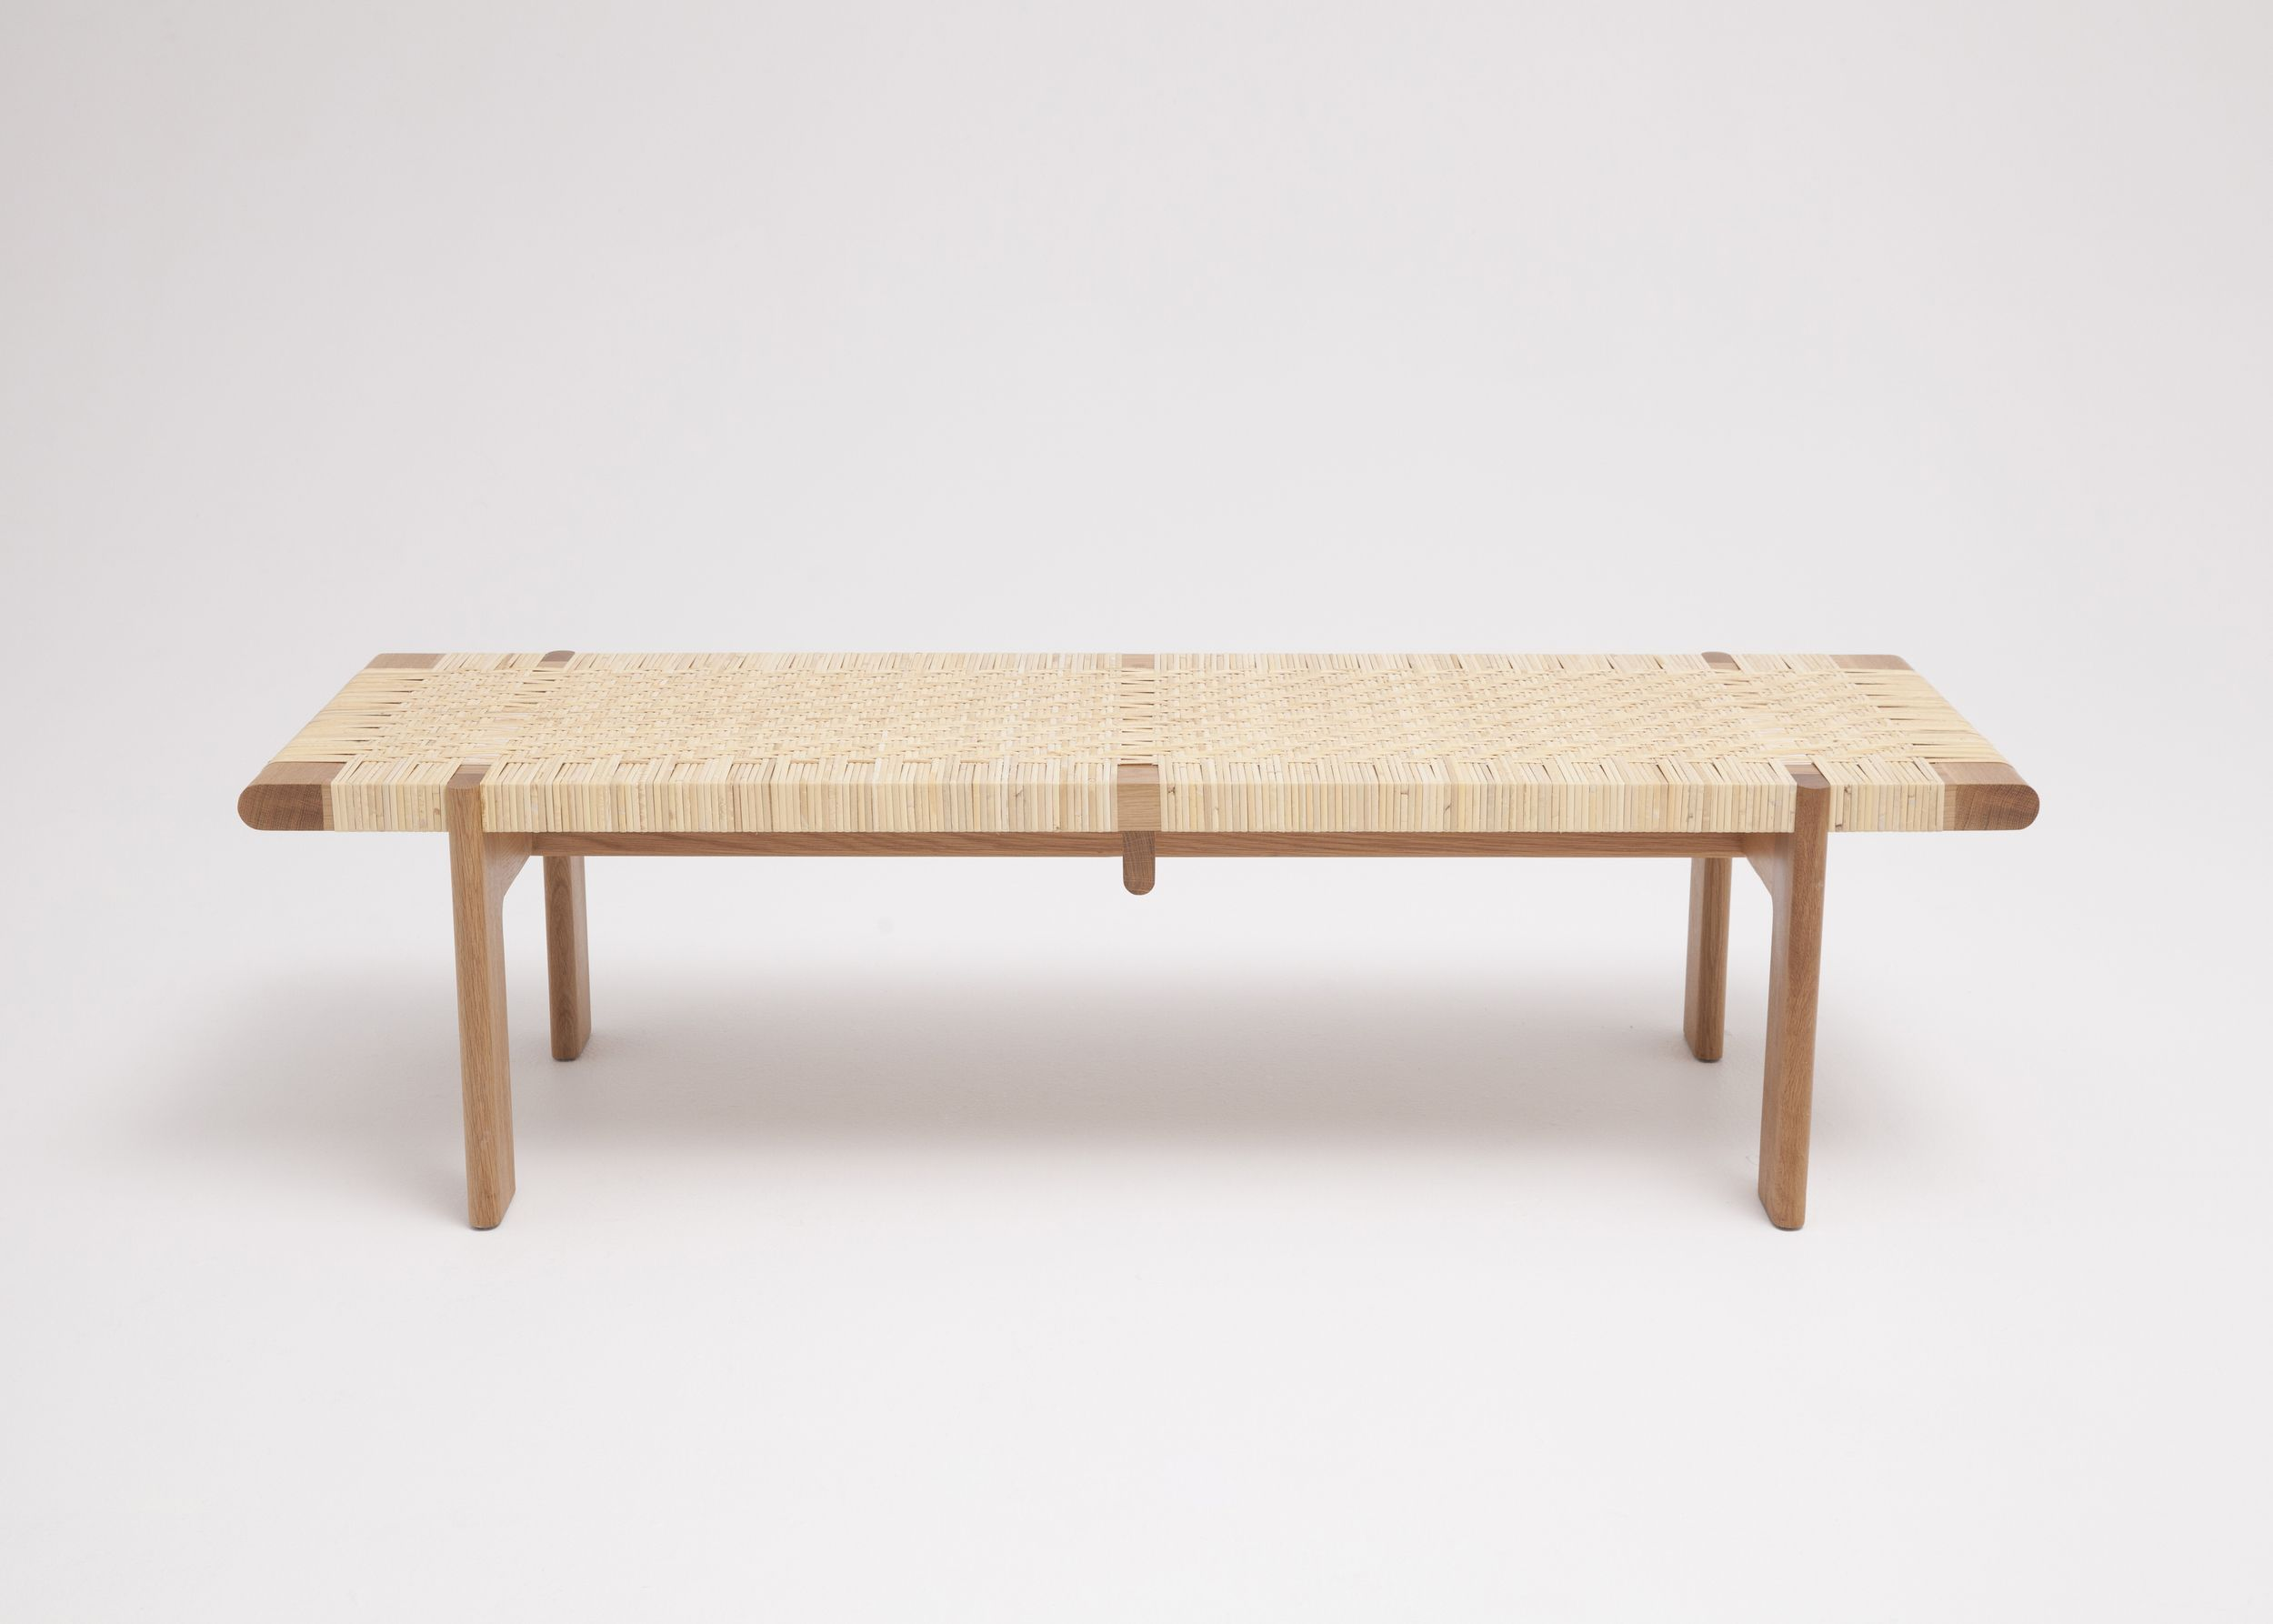 Rattan Bench | Rattan, Bench and Rattan furniture